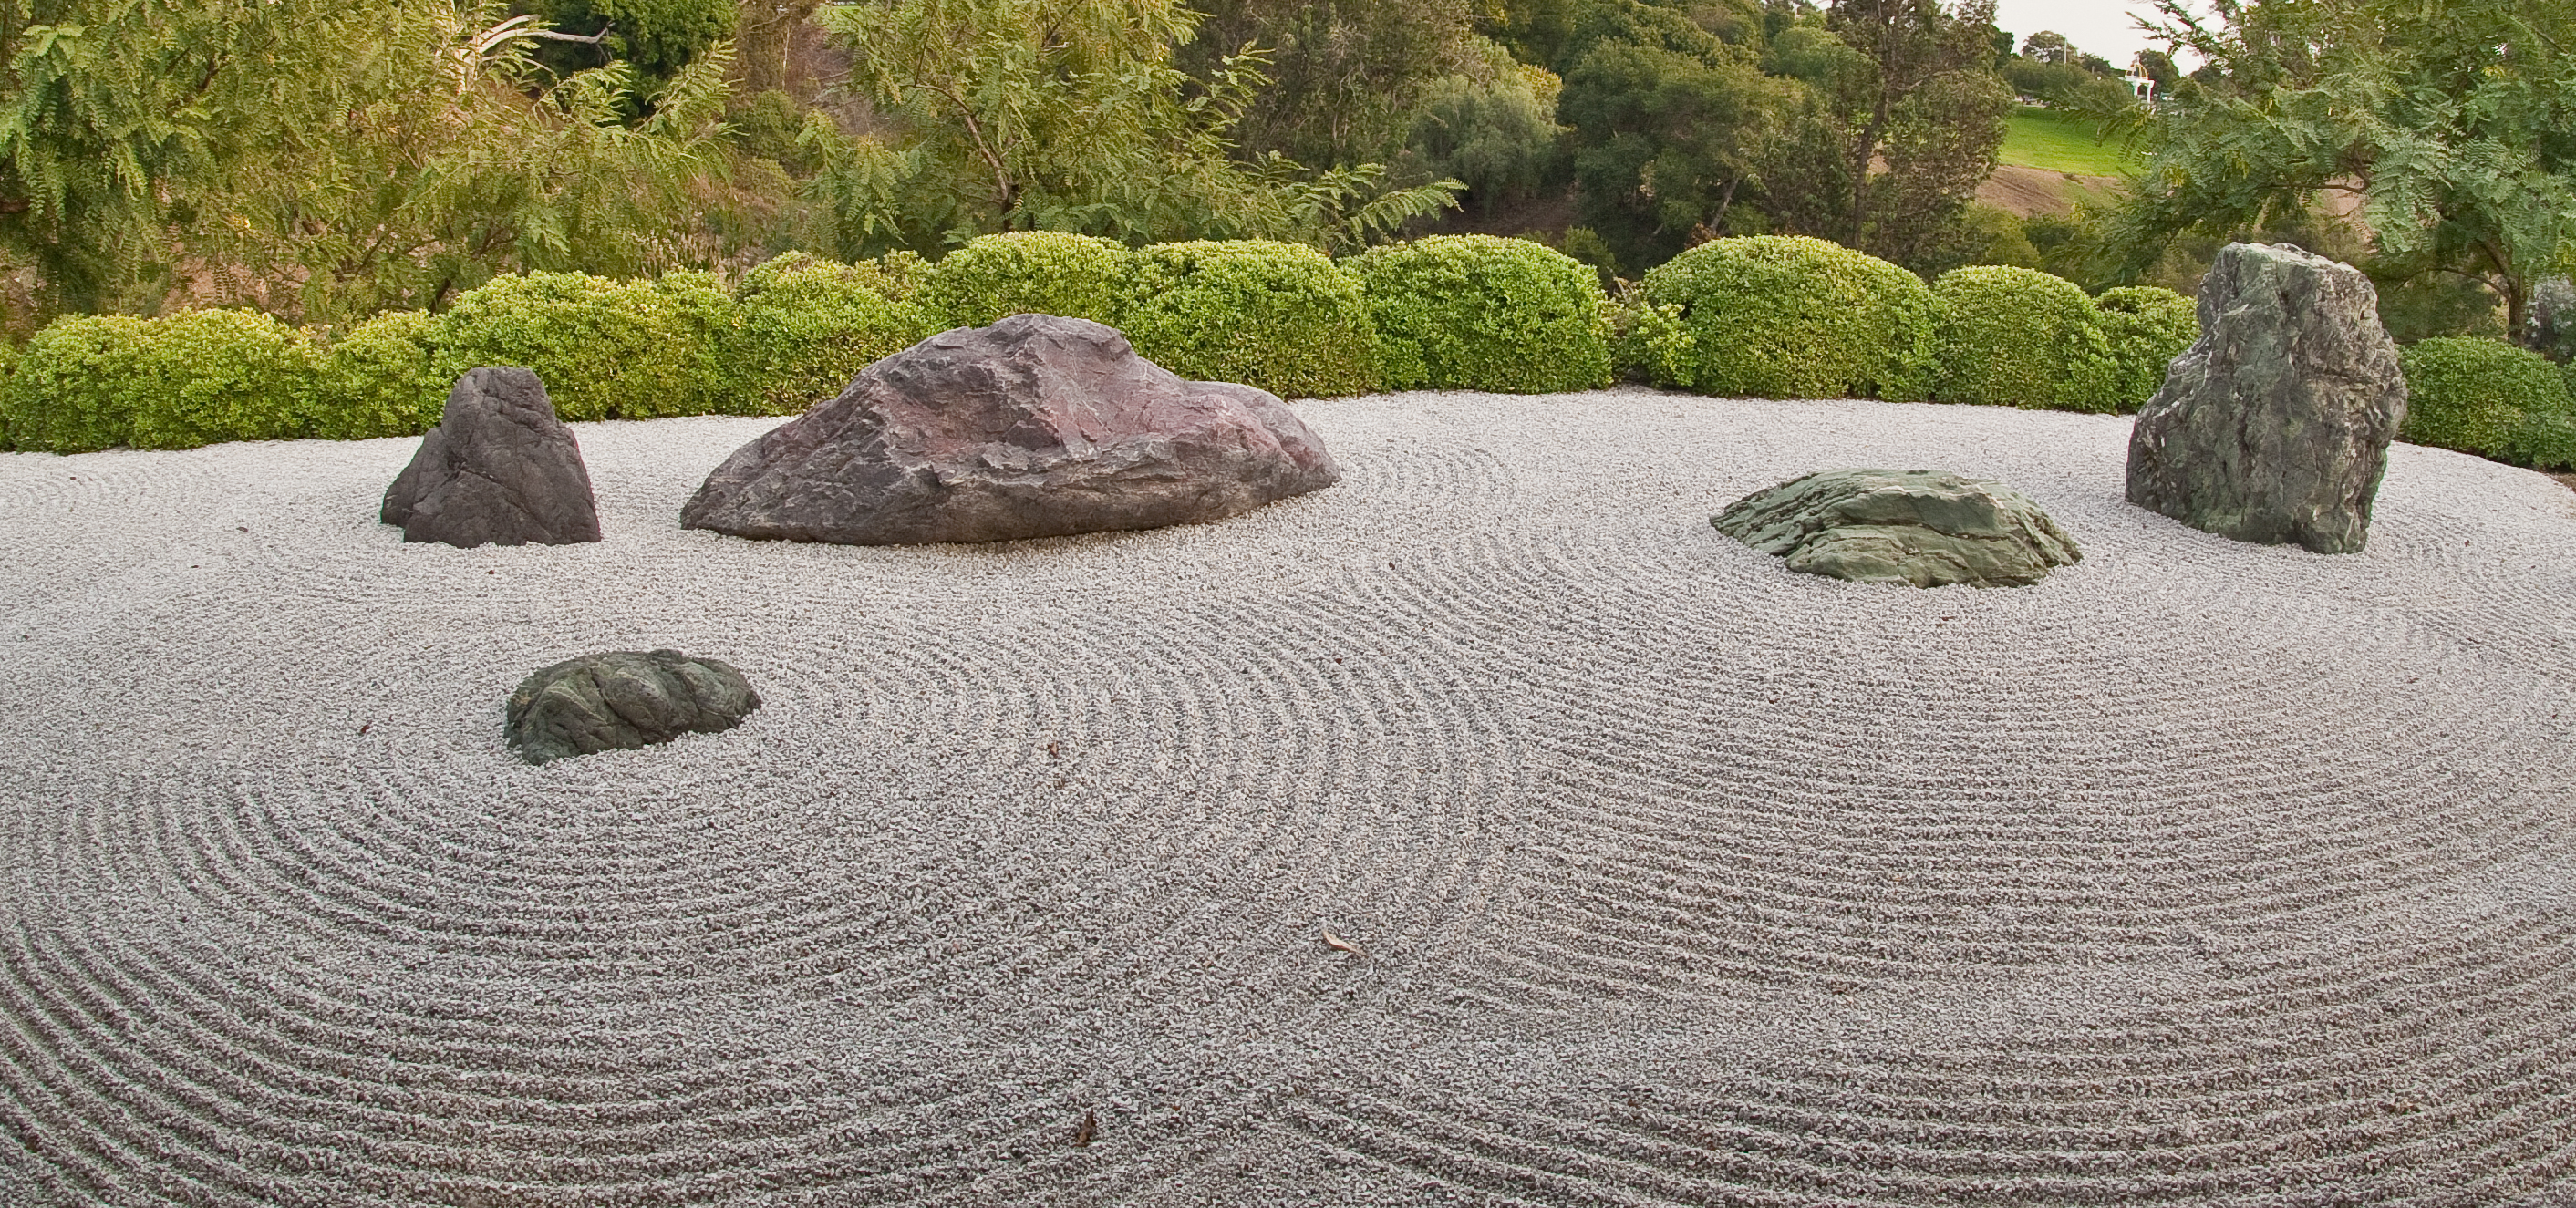 Zen garden in the Japanese Friendship Garden, Balboa Park, San Diego